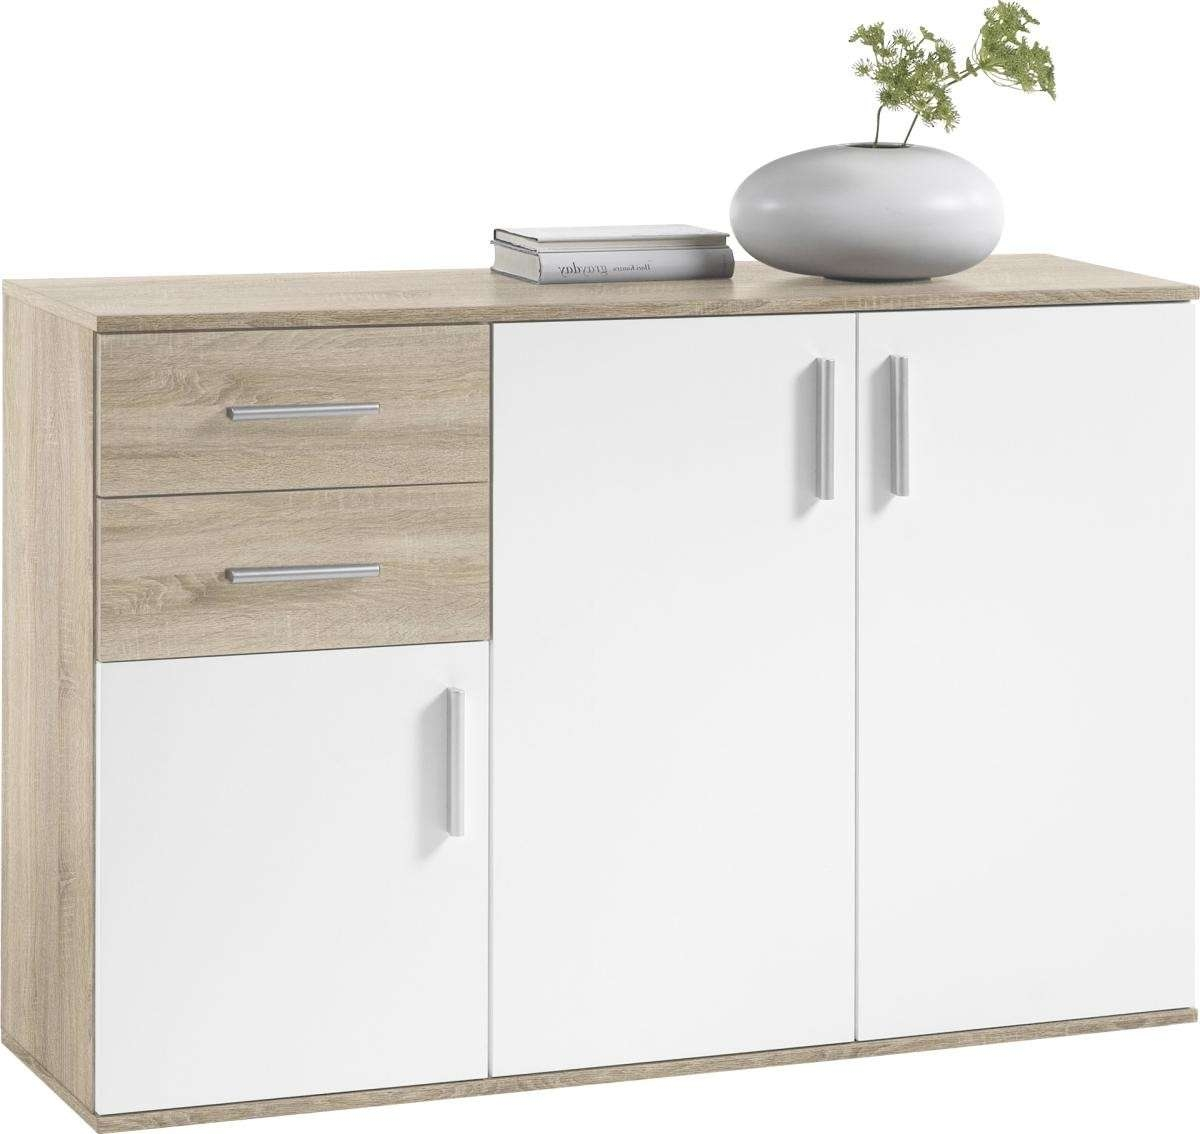 Kommodenserien | Online Bei Poco Kaufen For Kleine Sideboards (View 17 of 20)